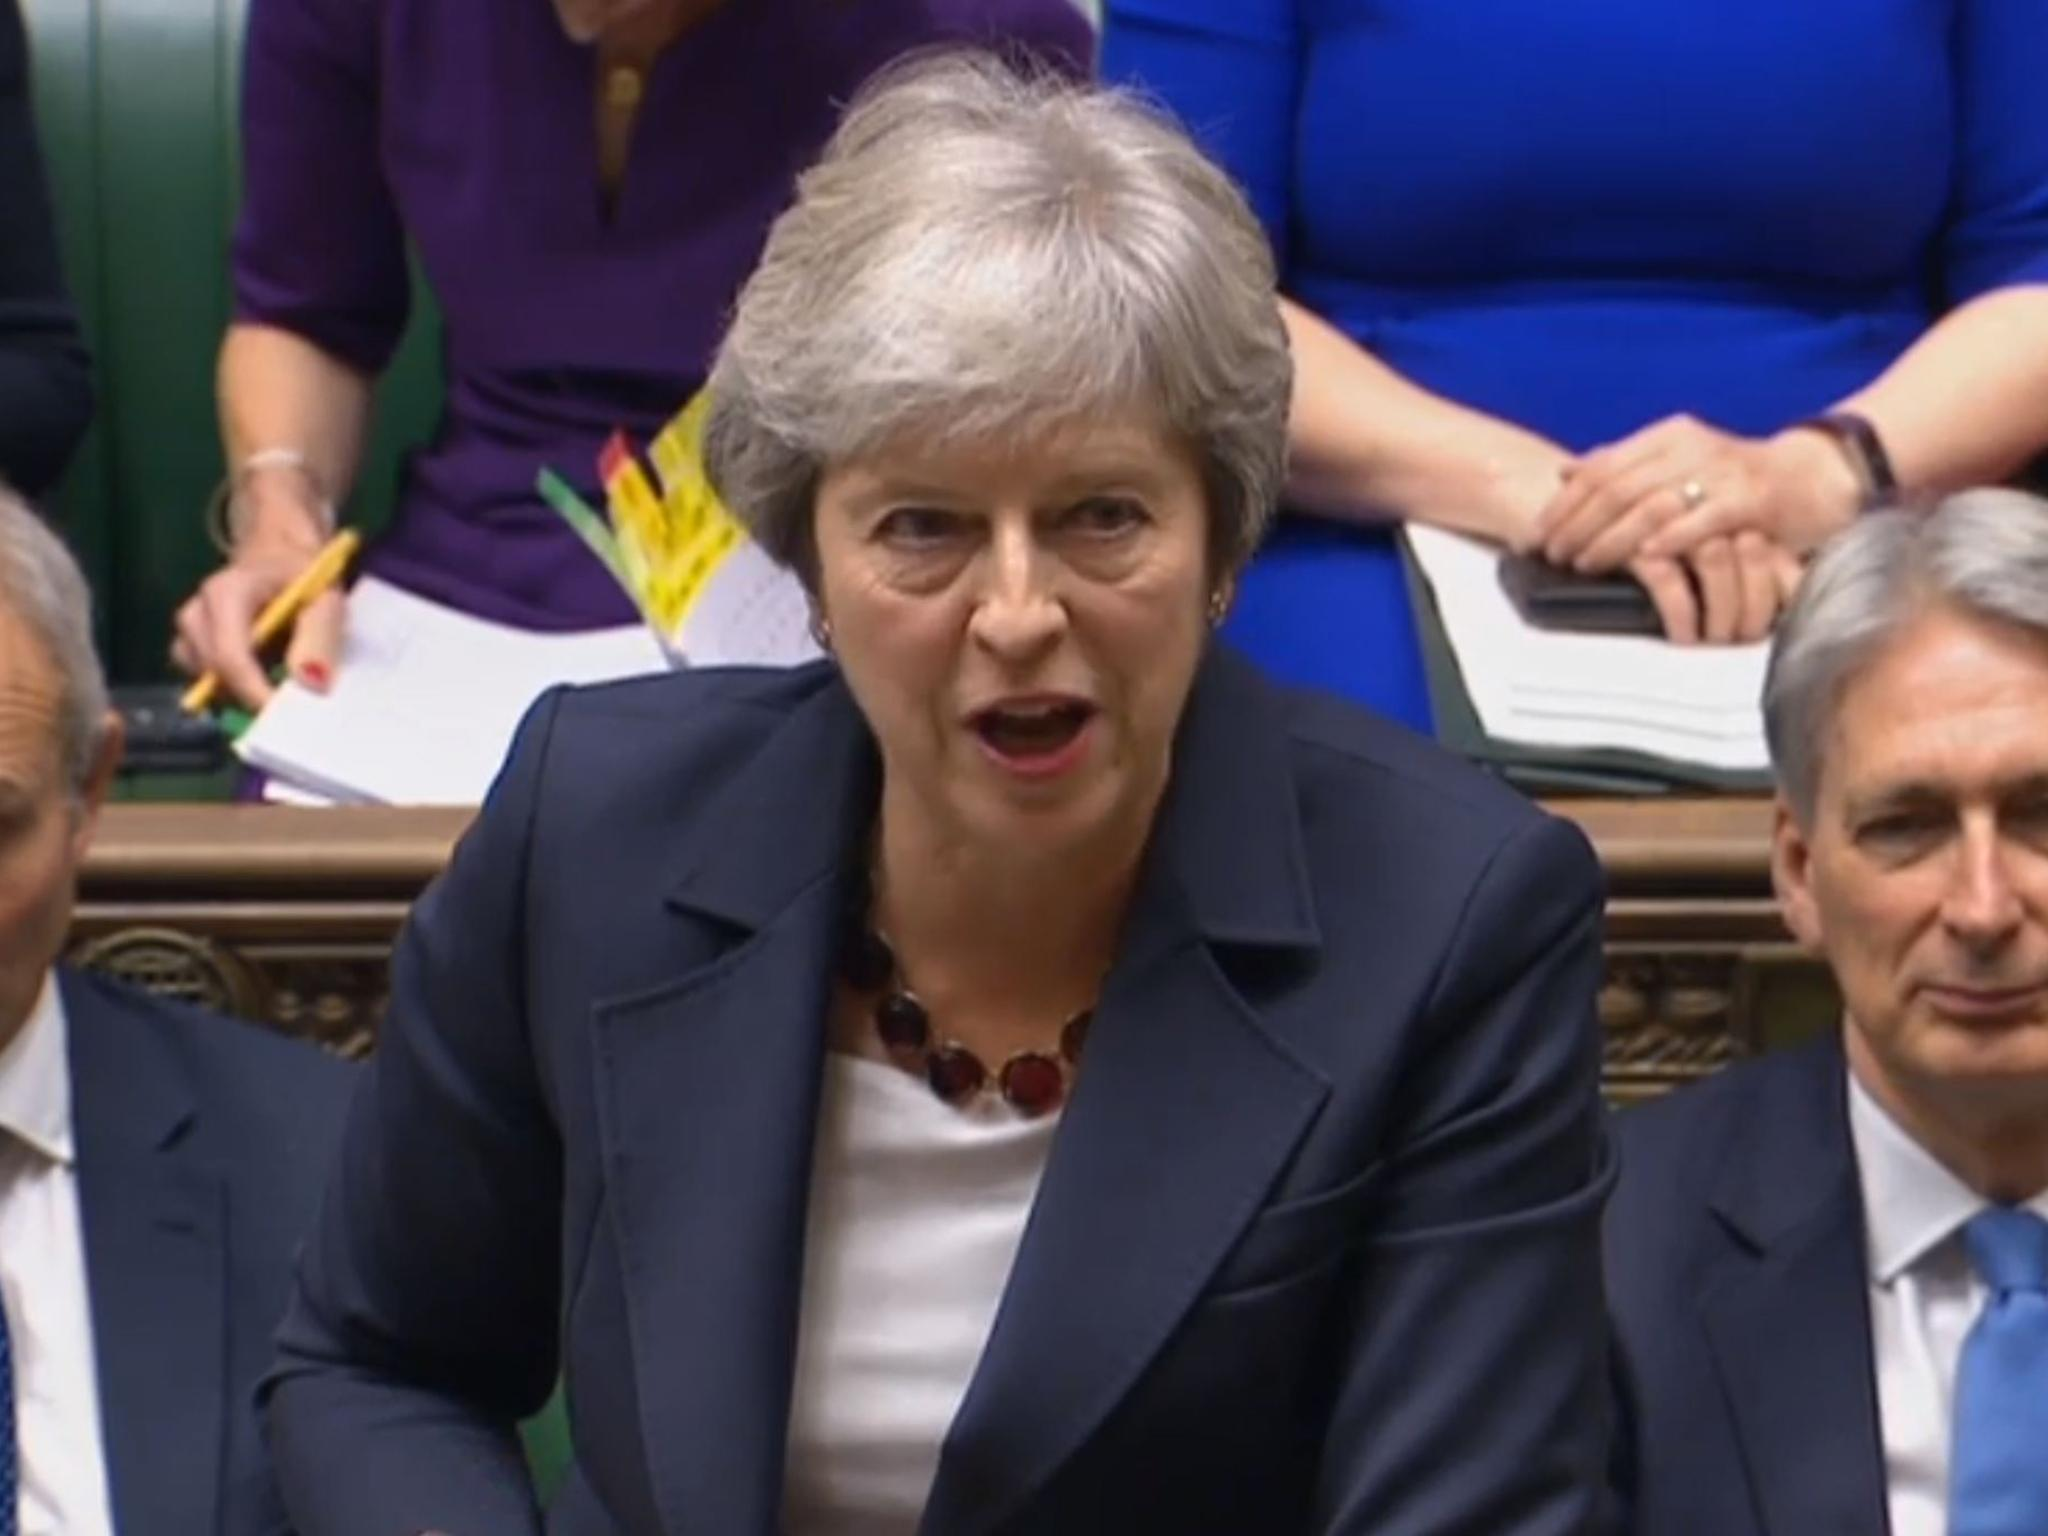 Oxford economist accuses Theresa May of 'lying' when she quoted him during PMQs